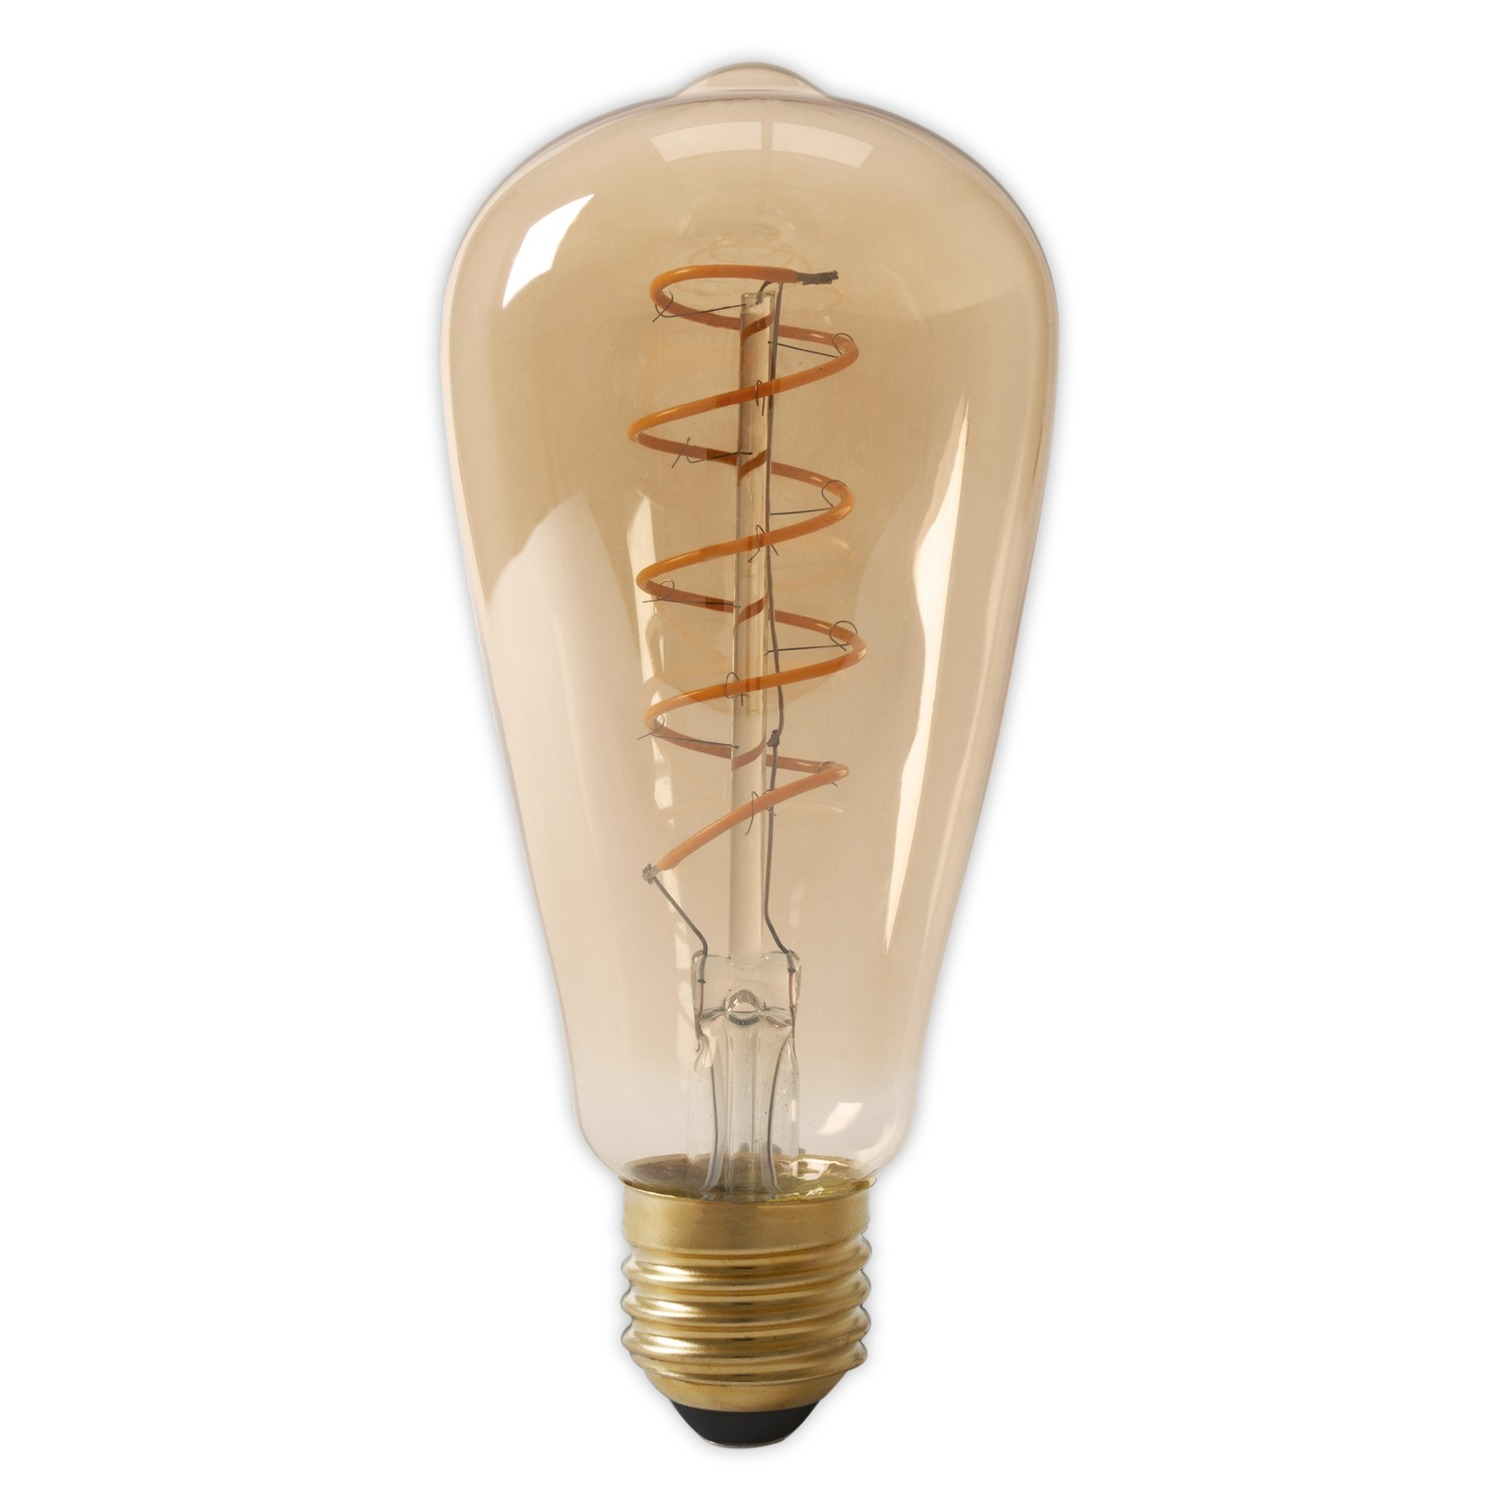 LED Full Glass Flex Filament Rustik Lamp Calex 4W E27 Gold dimbaar